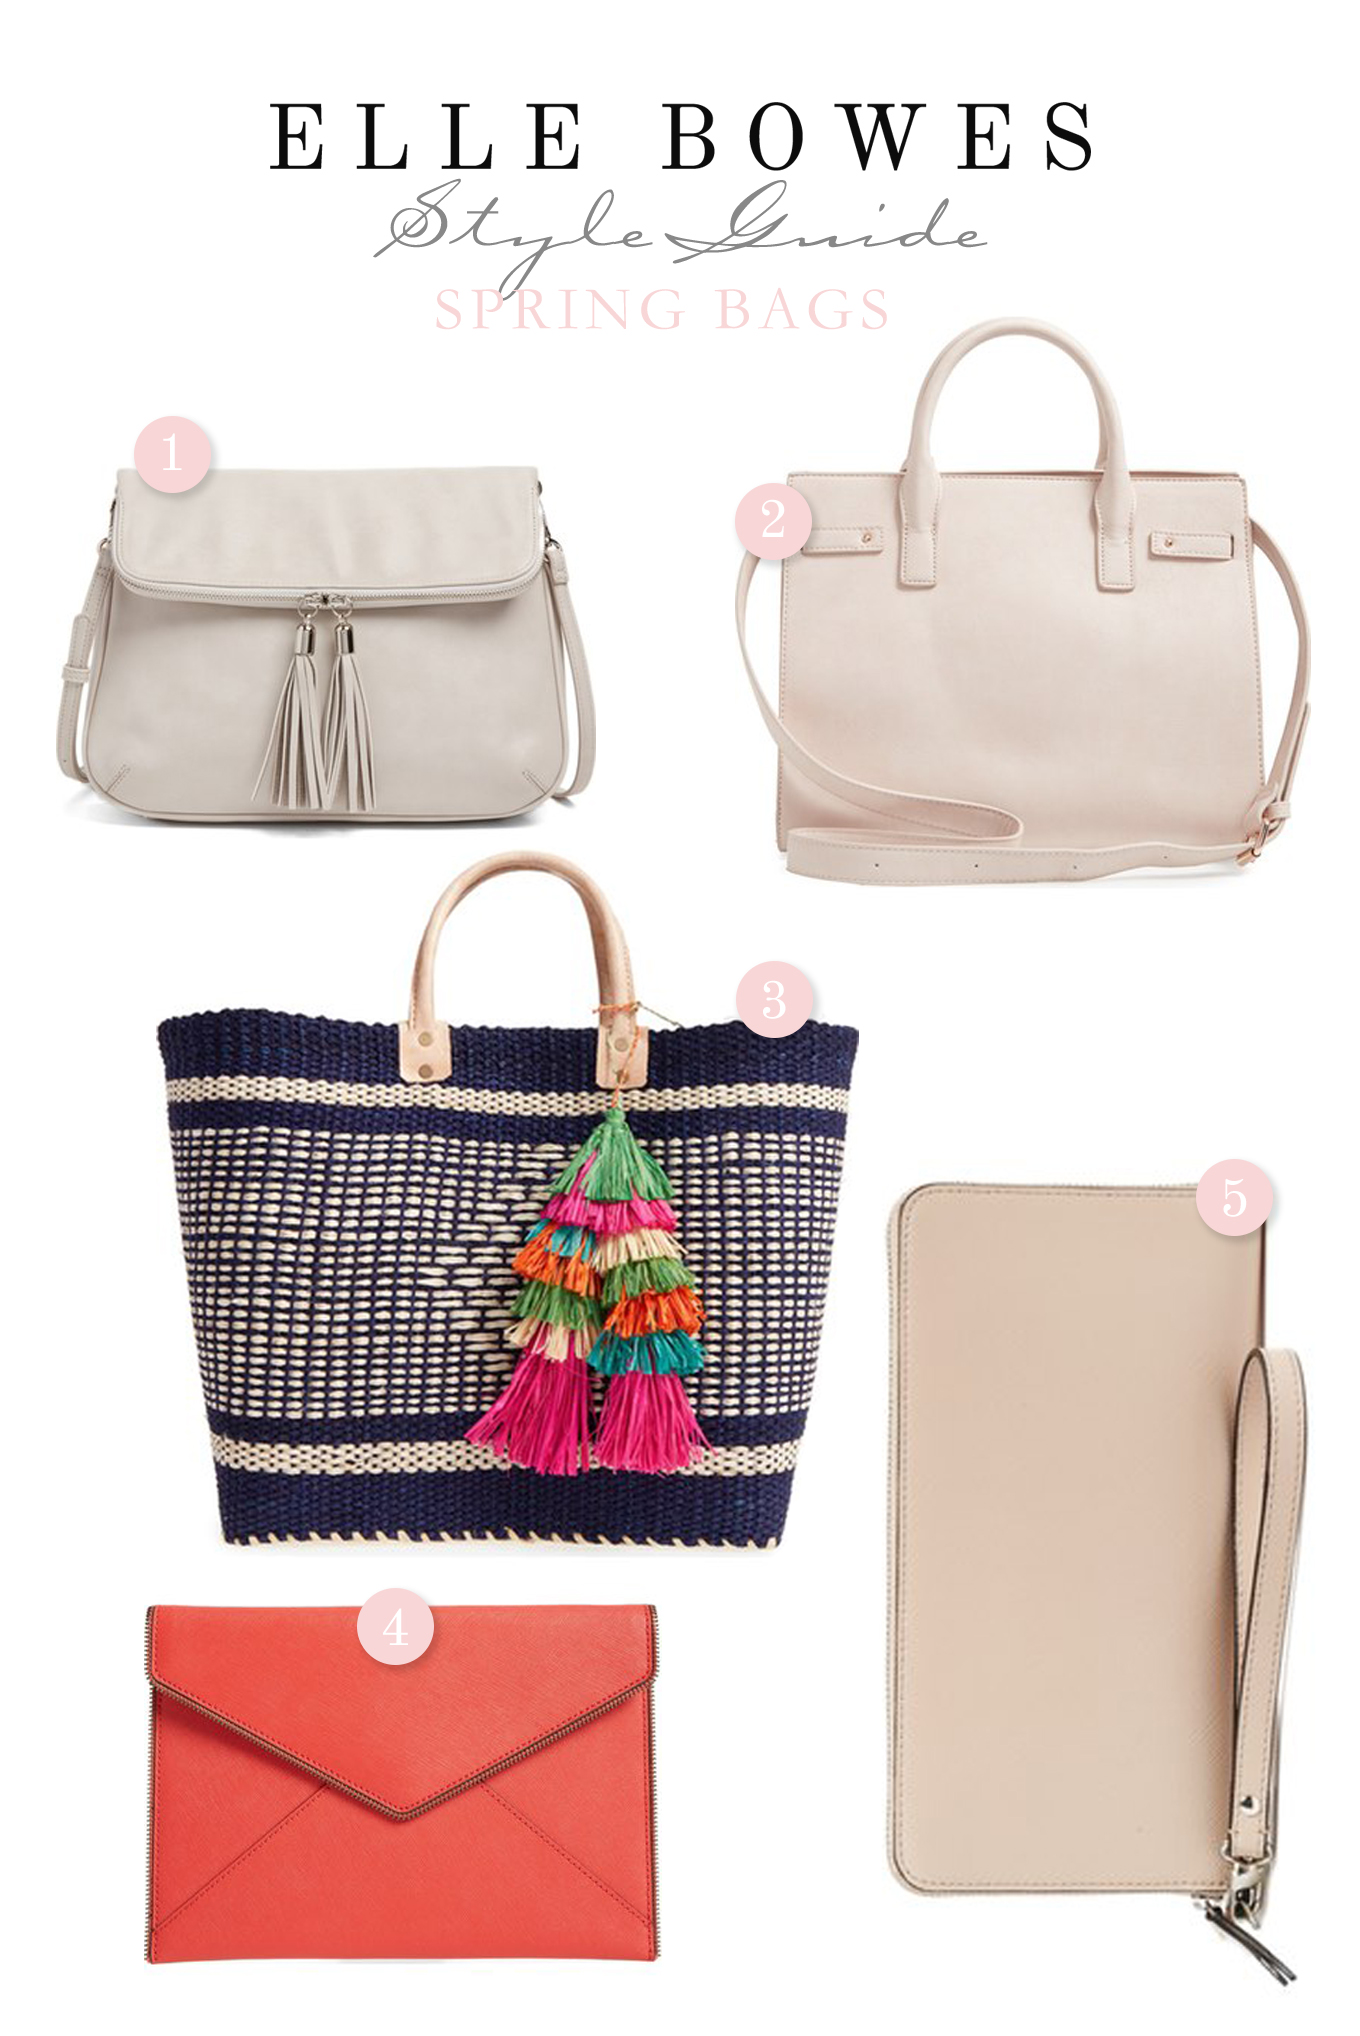 Must have spring bags! | Elle Bowes